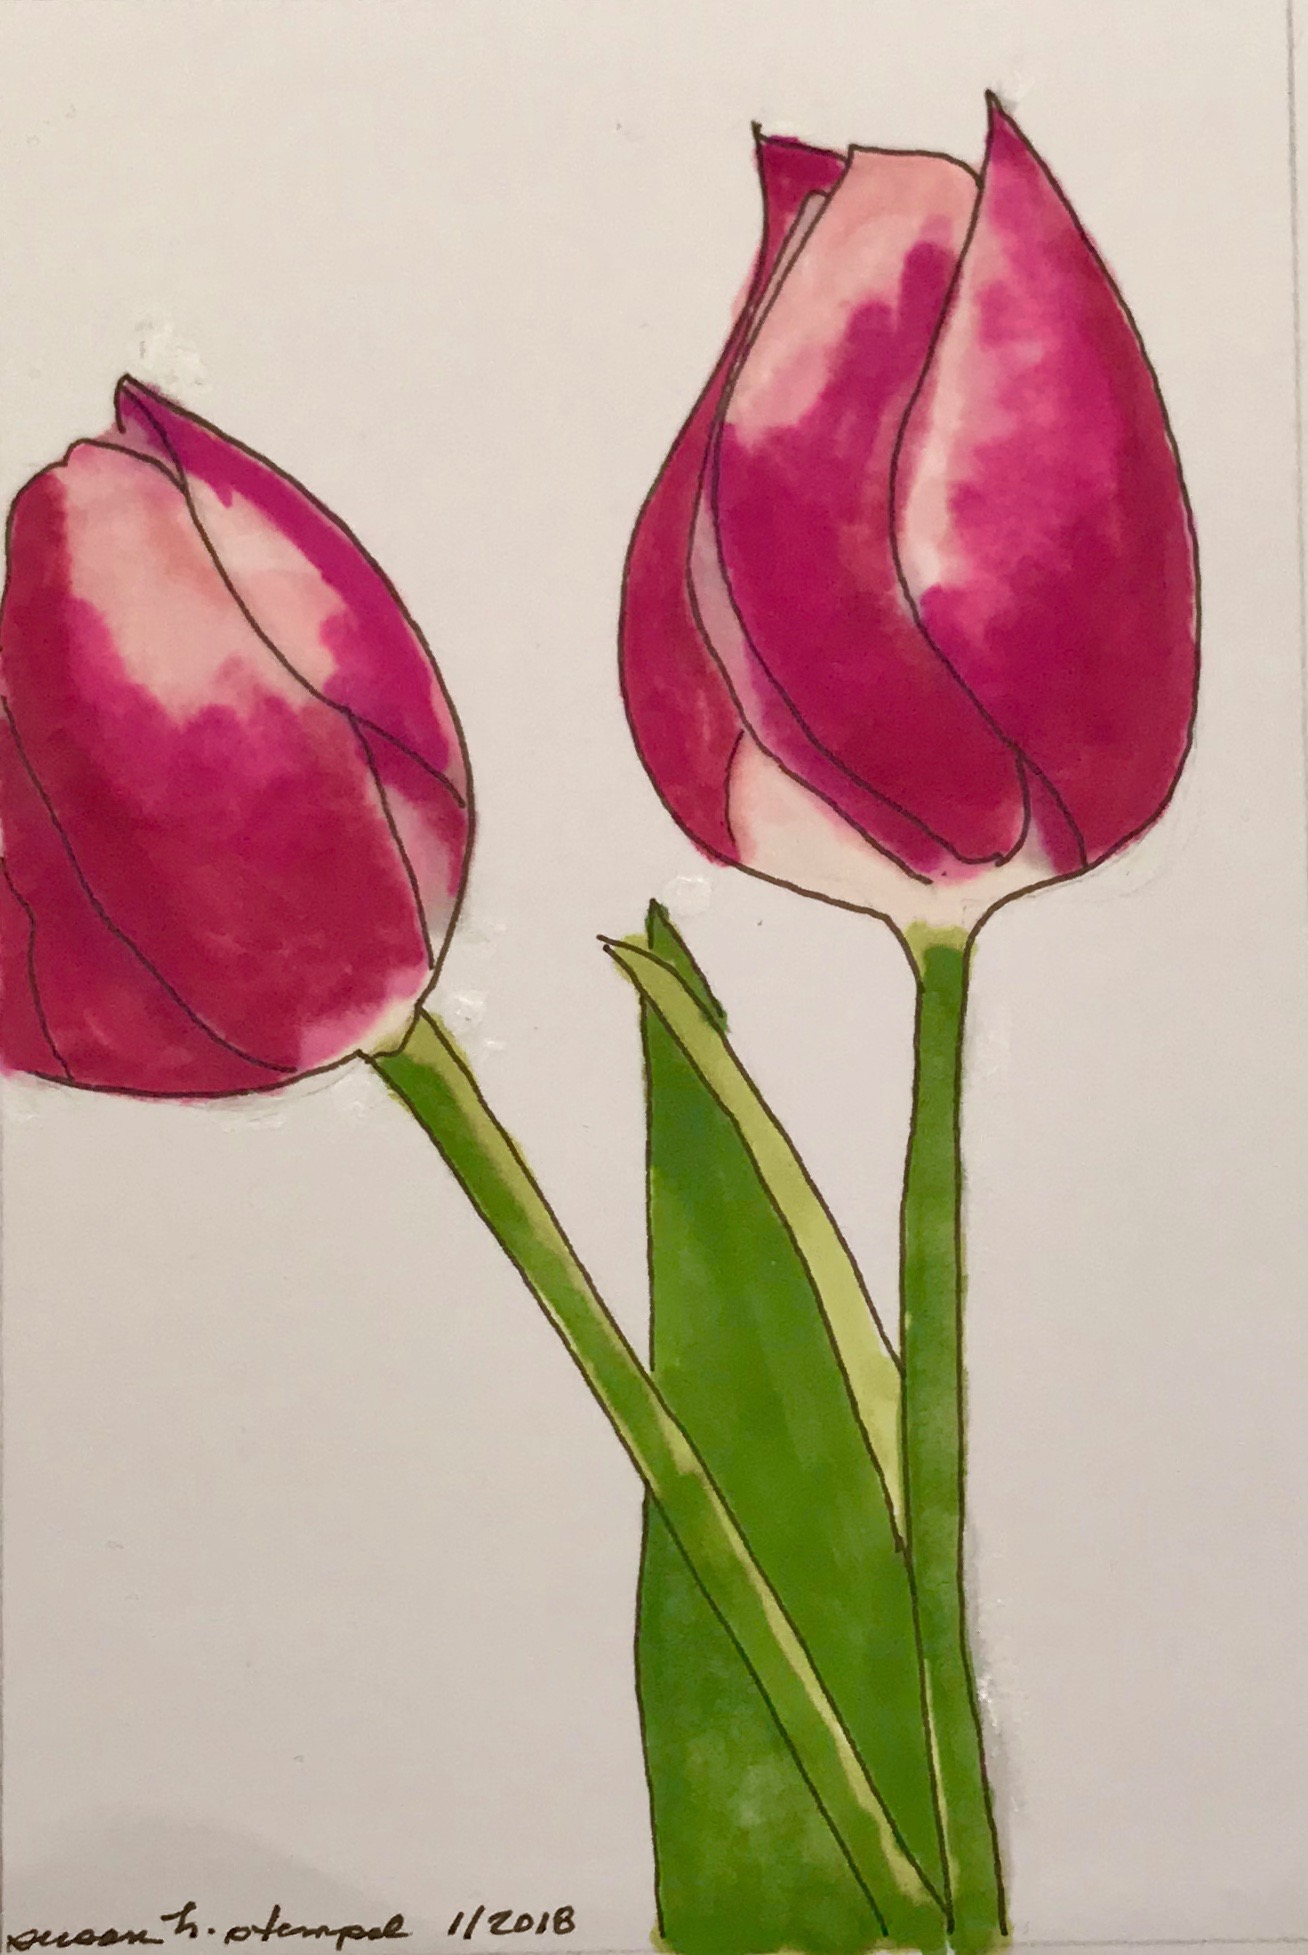 "$300. 5"" x 7"" pen & ink on paper. ""Two tulips"""